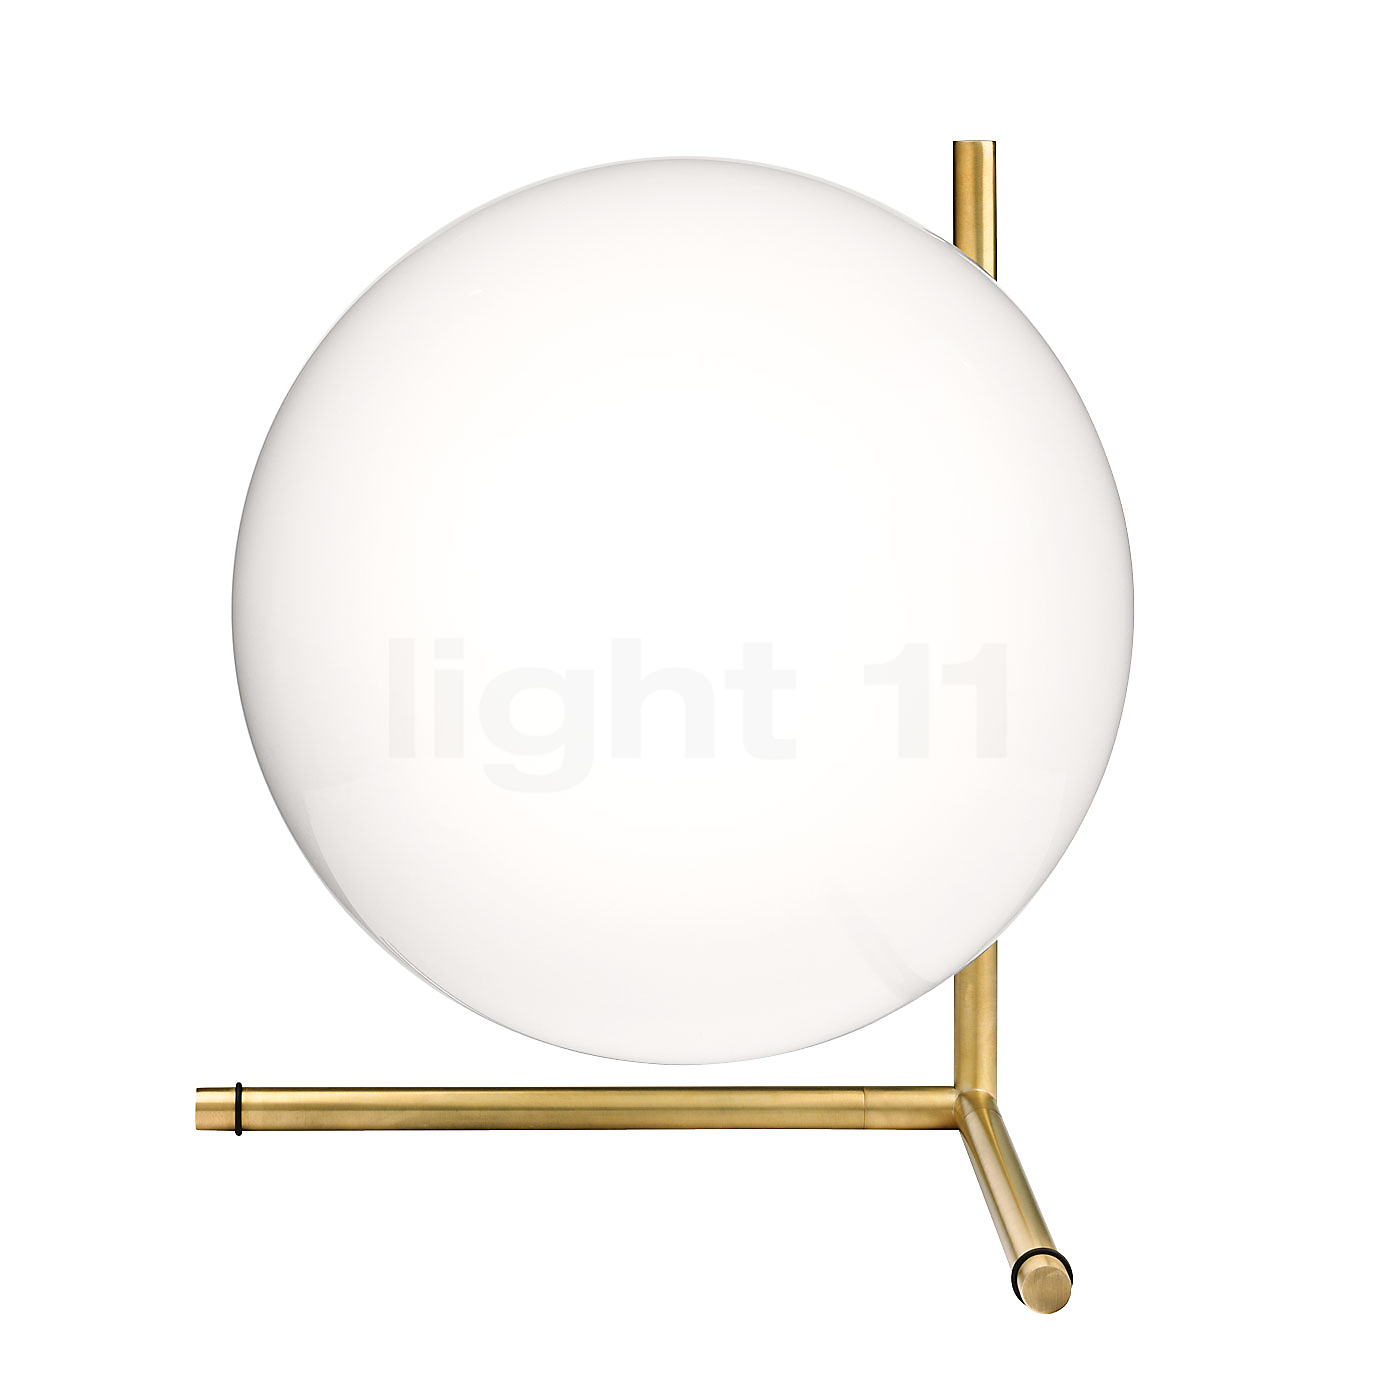 Flos ic lights t2 table lamps lamps lights - Ic lights flos ...